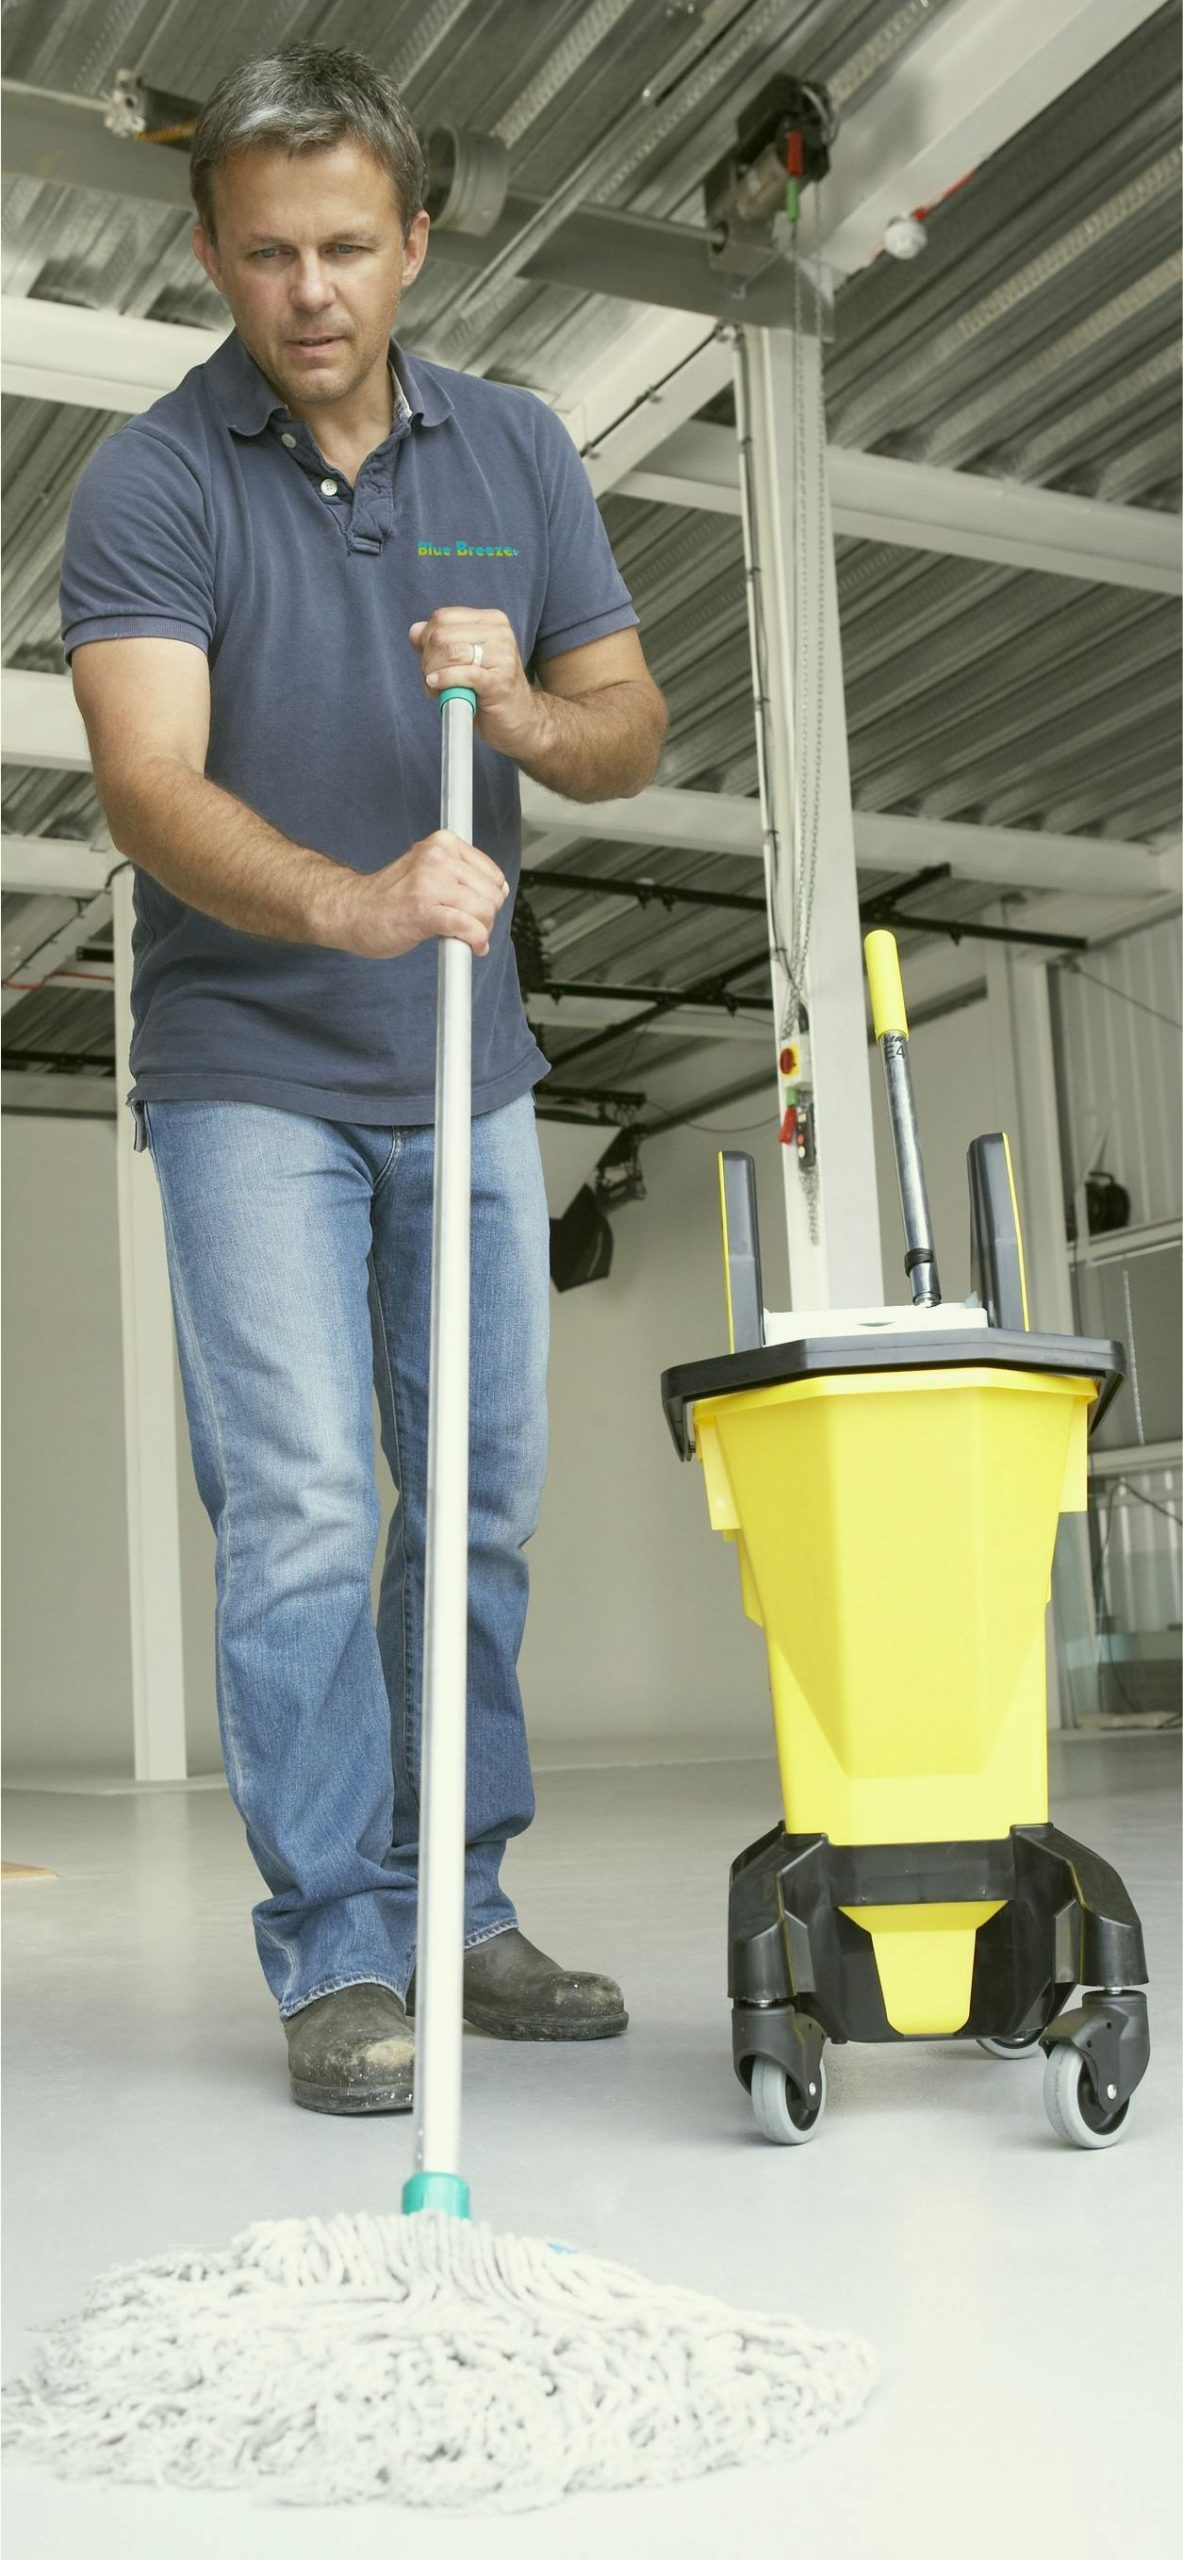 qulaity cleaning services Cardiff staff mopping floor